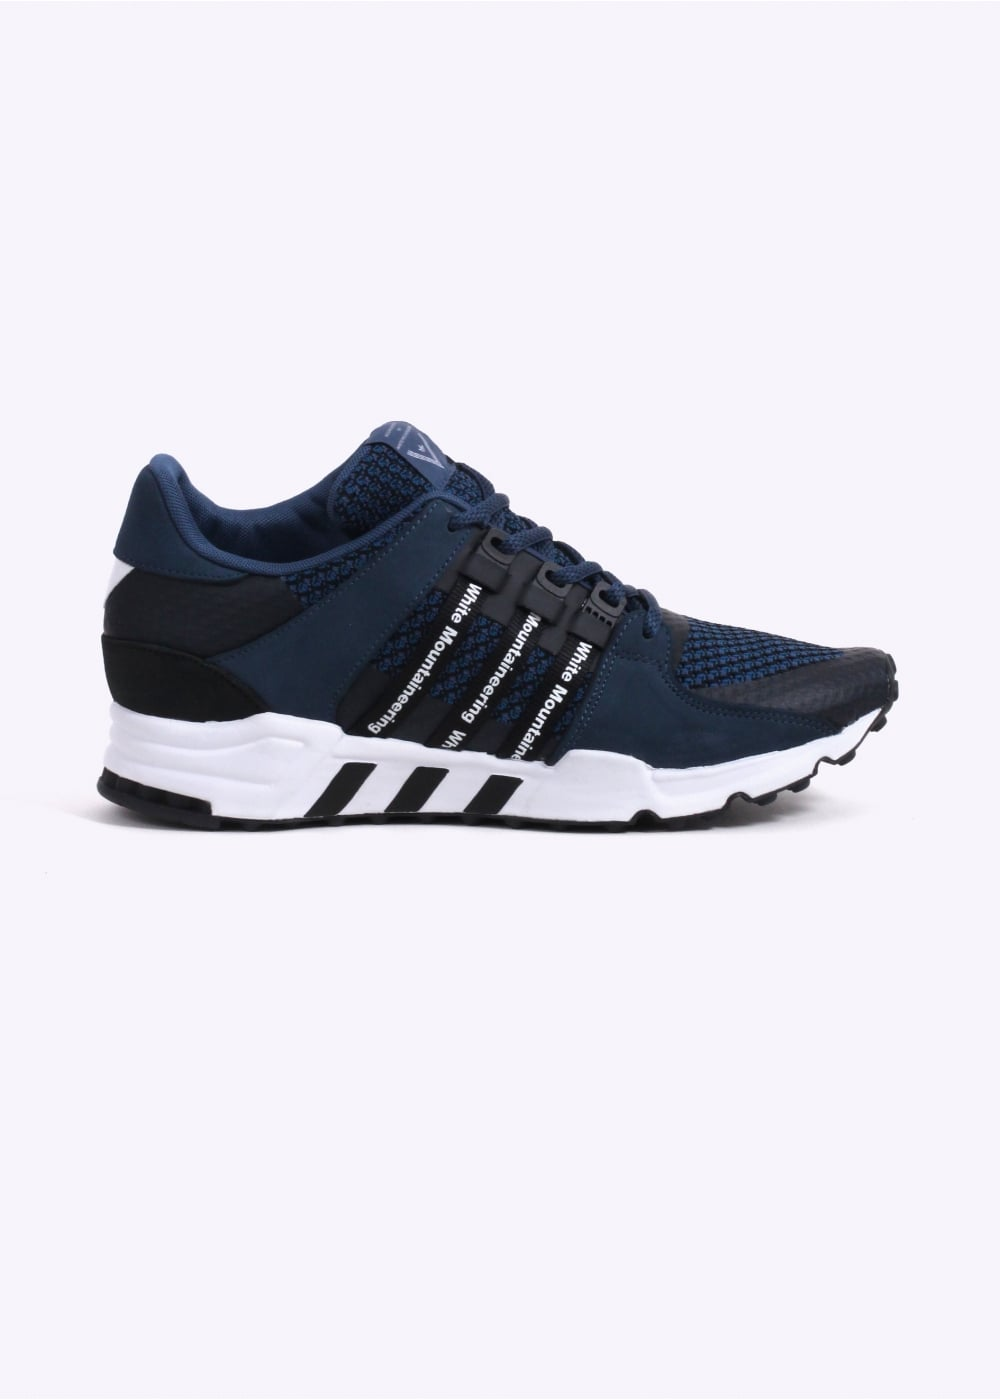 check out 9543b 69ac2 adidas Originals Apparel x White Mountaineering EQT Running - Night Marine